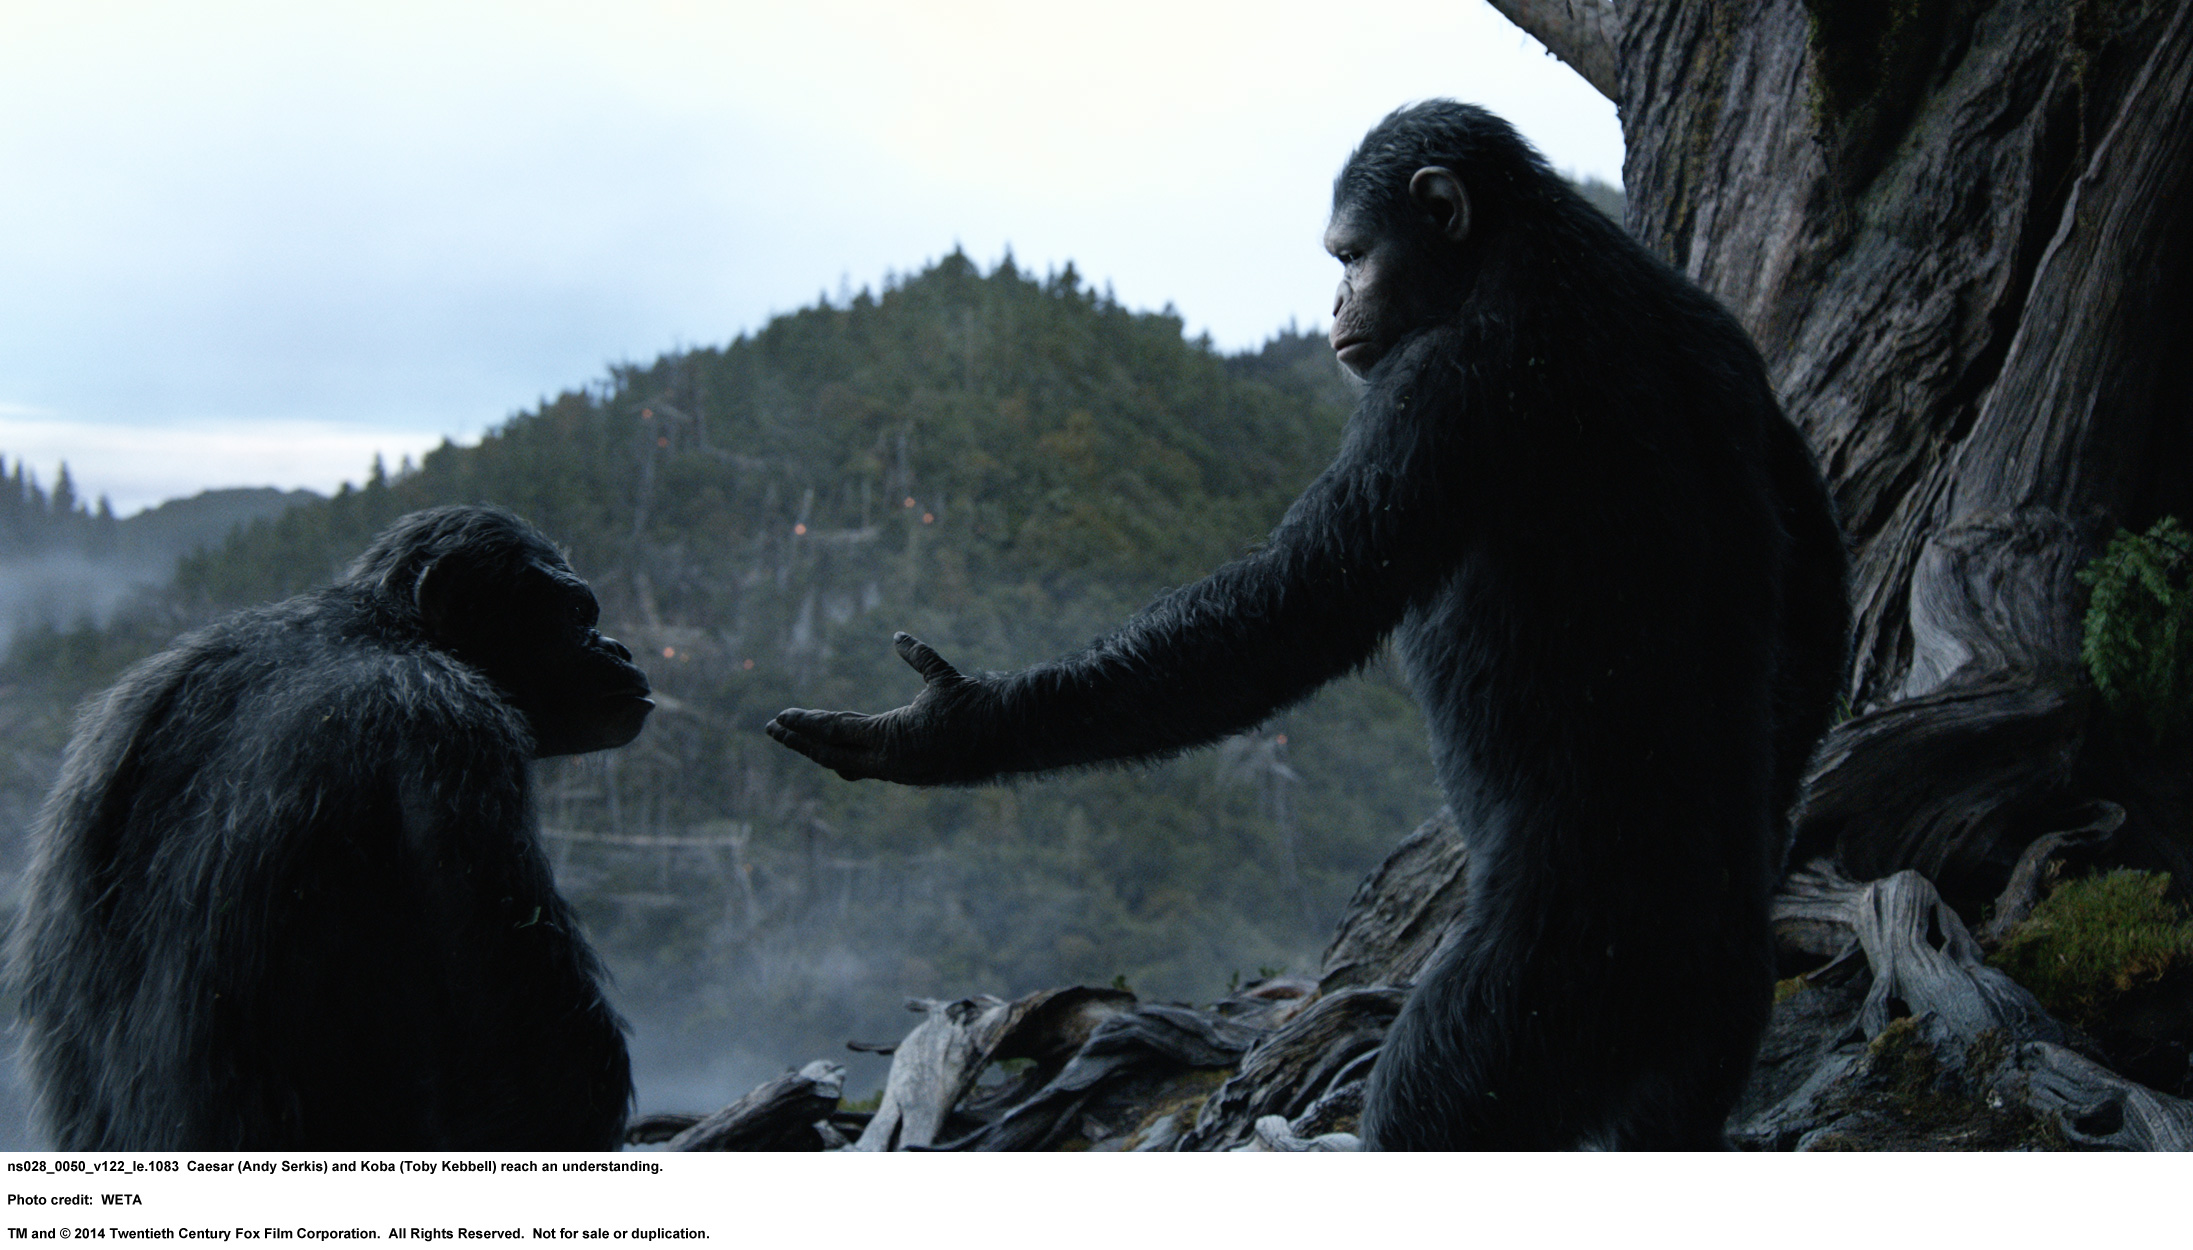 dawn-of-the-planet-of-the-apes-ns028_0050_v122_le-1083_rgb.jpg